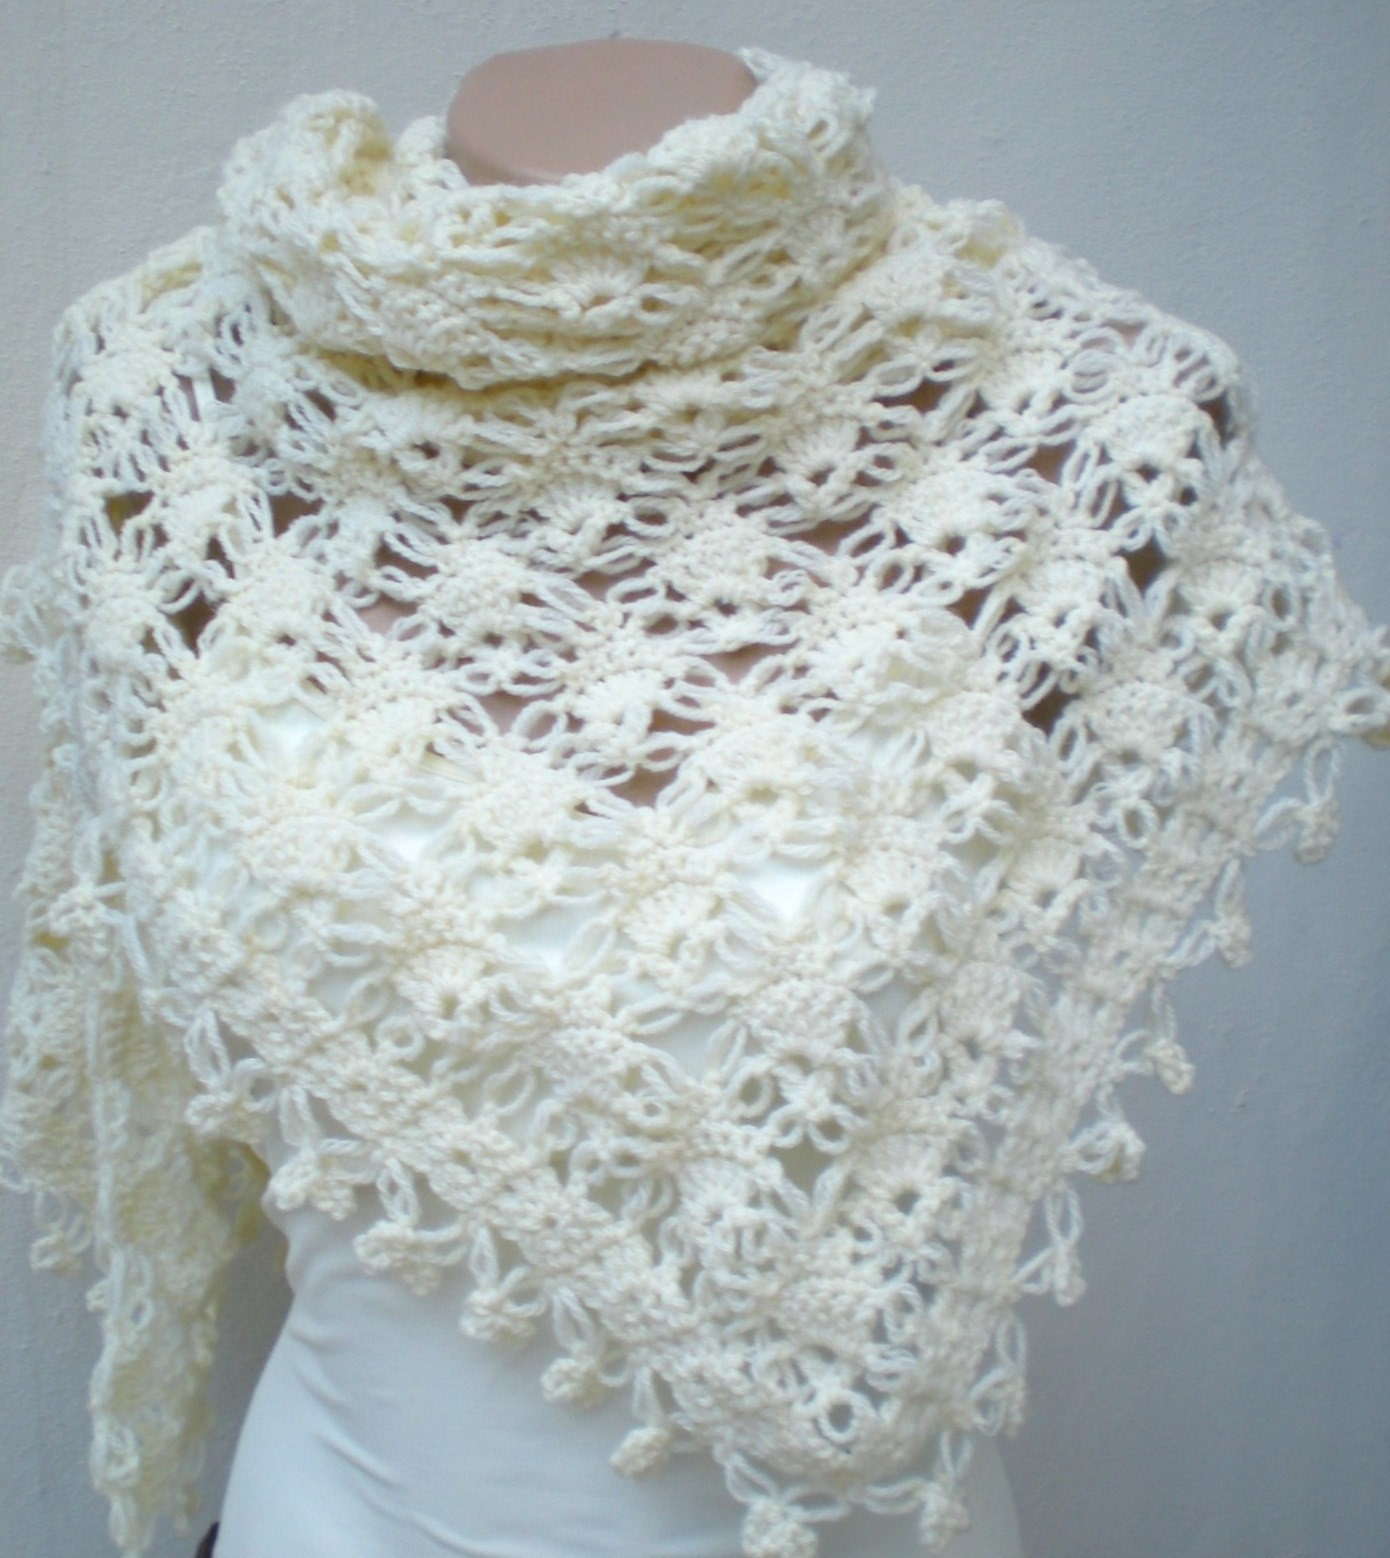 Crochet Patterns For Shawls : Crochet Pattern Shawl Thread Free Patterns For Crochet